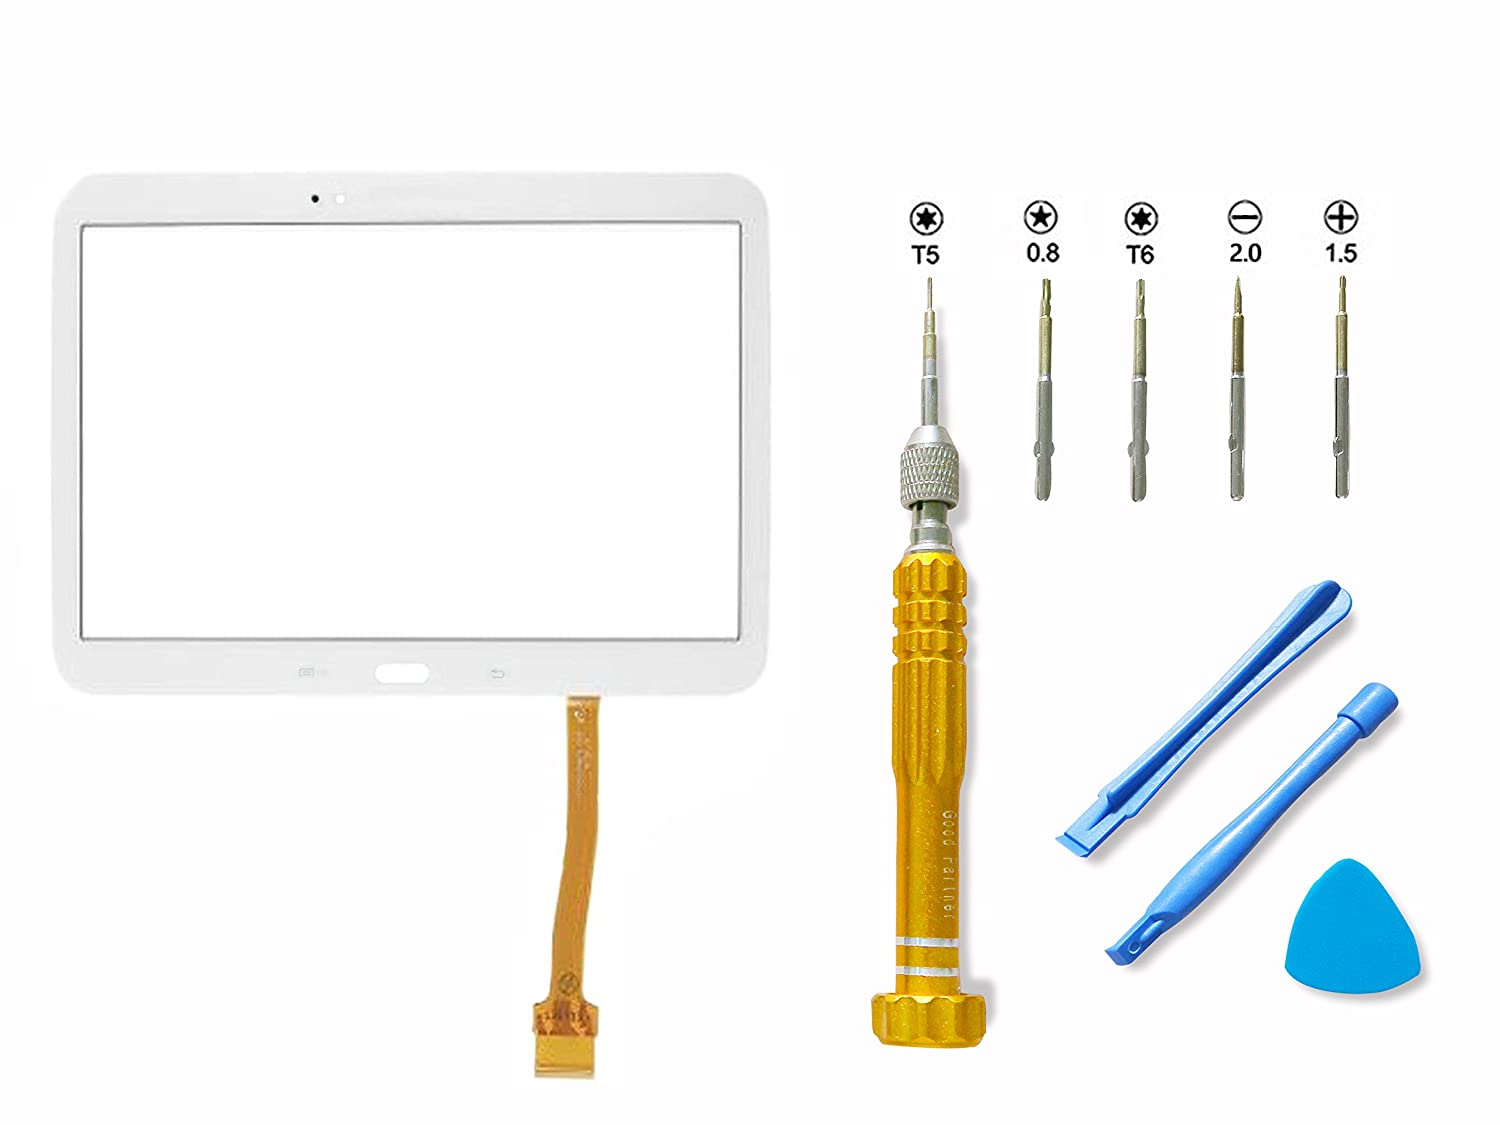 """free shipping For Samsung Galaxy Tab 3 10.1"""" P5200 Tablet Digitizer Touch Screen Panel Replacement (No LCD) with Free Repair Tools Kit Adhesive Glue, White"""